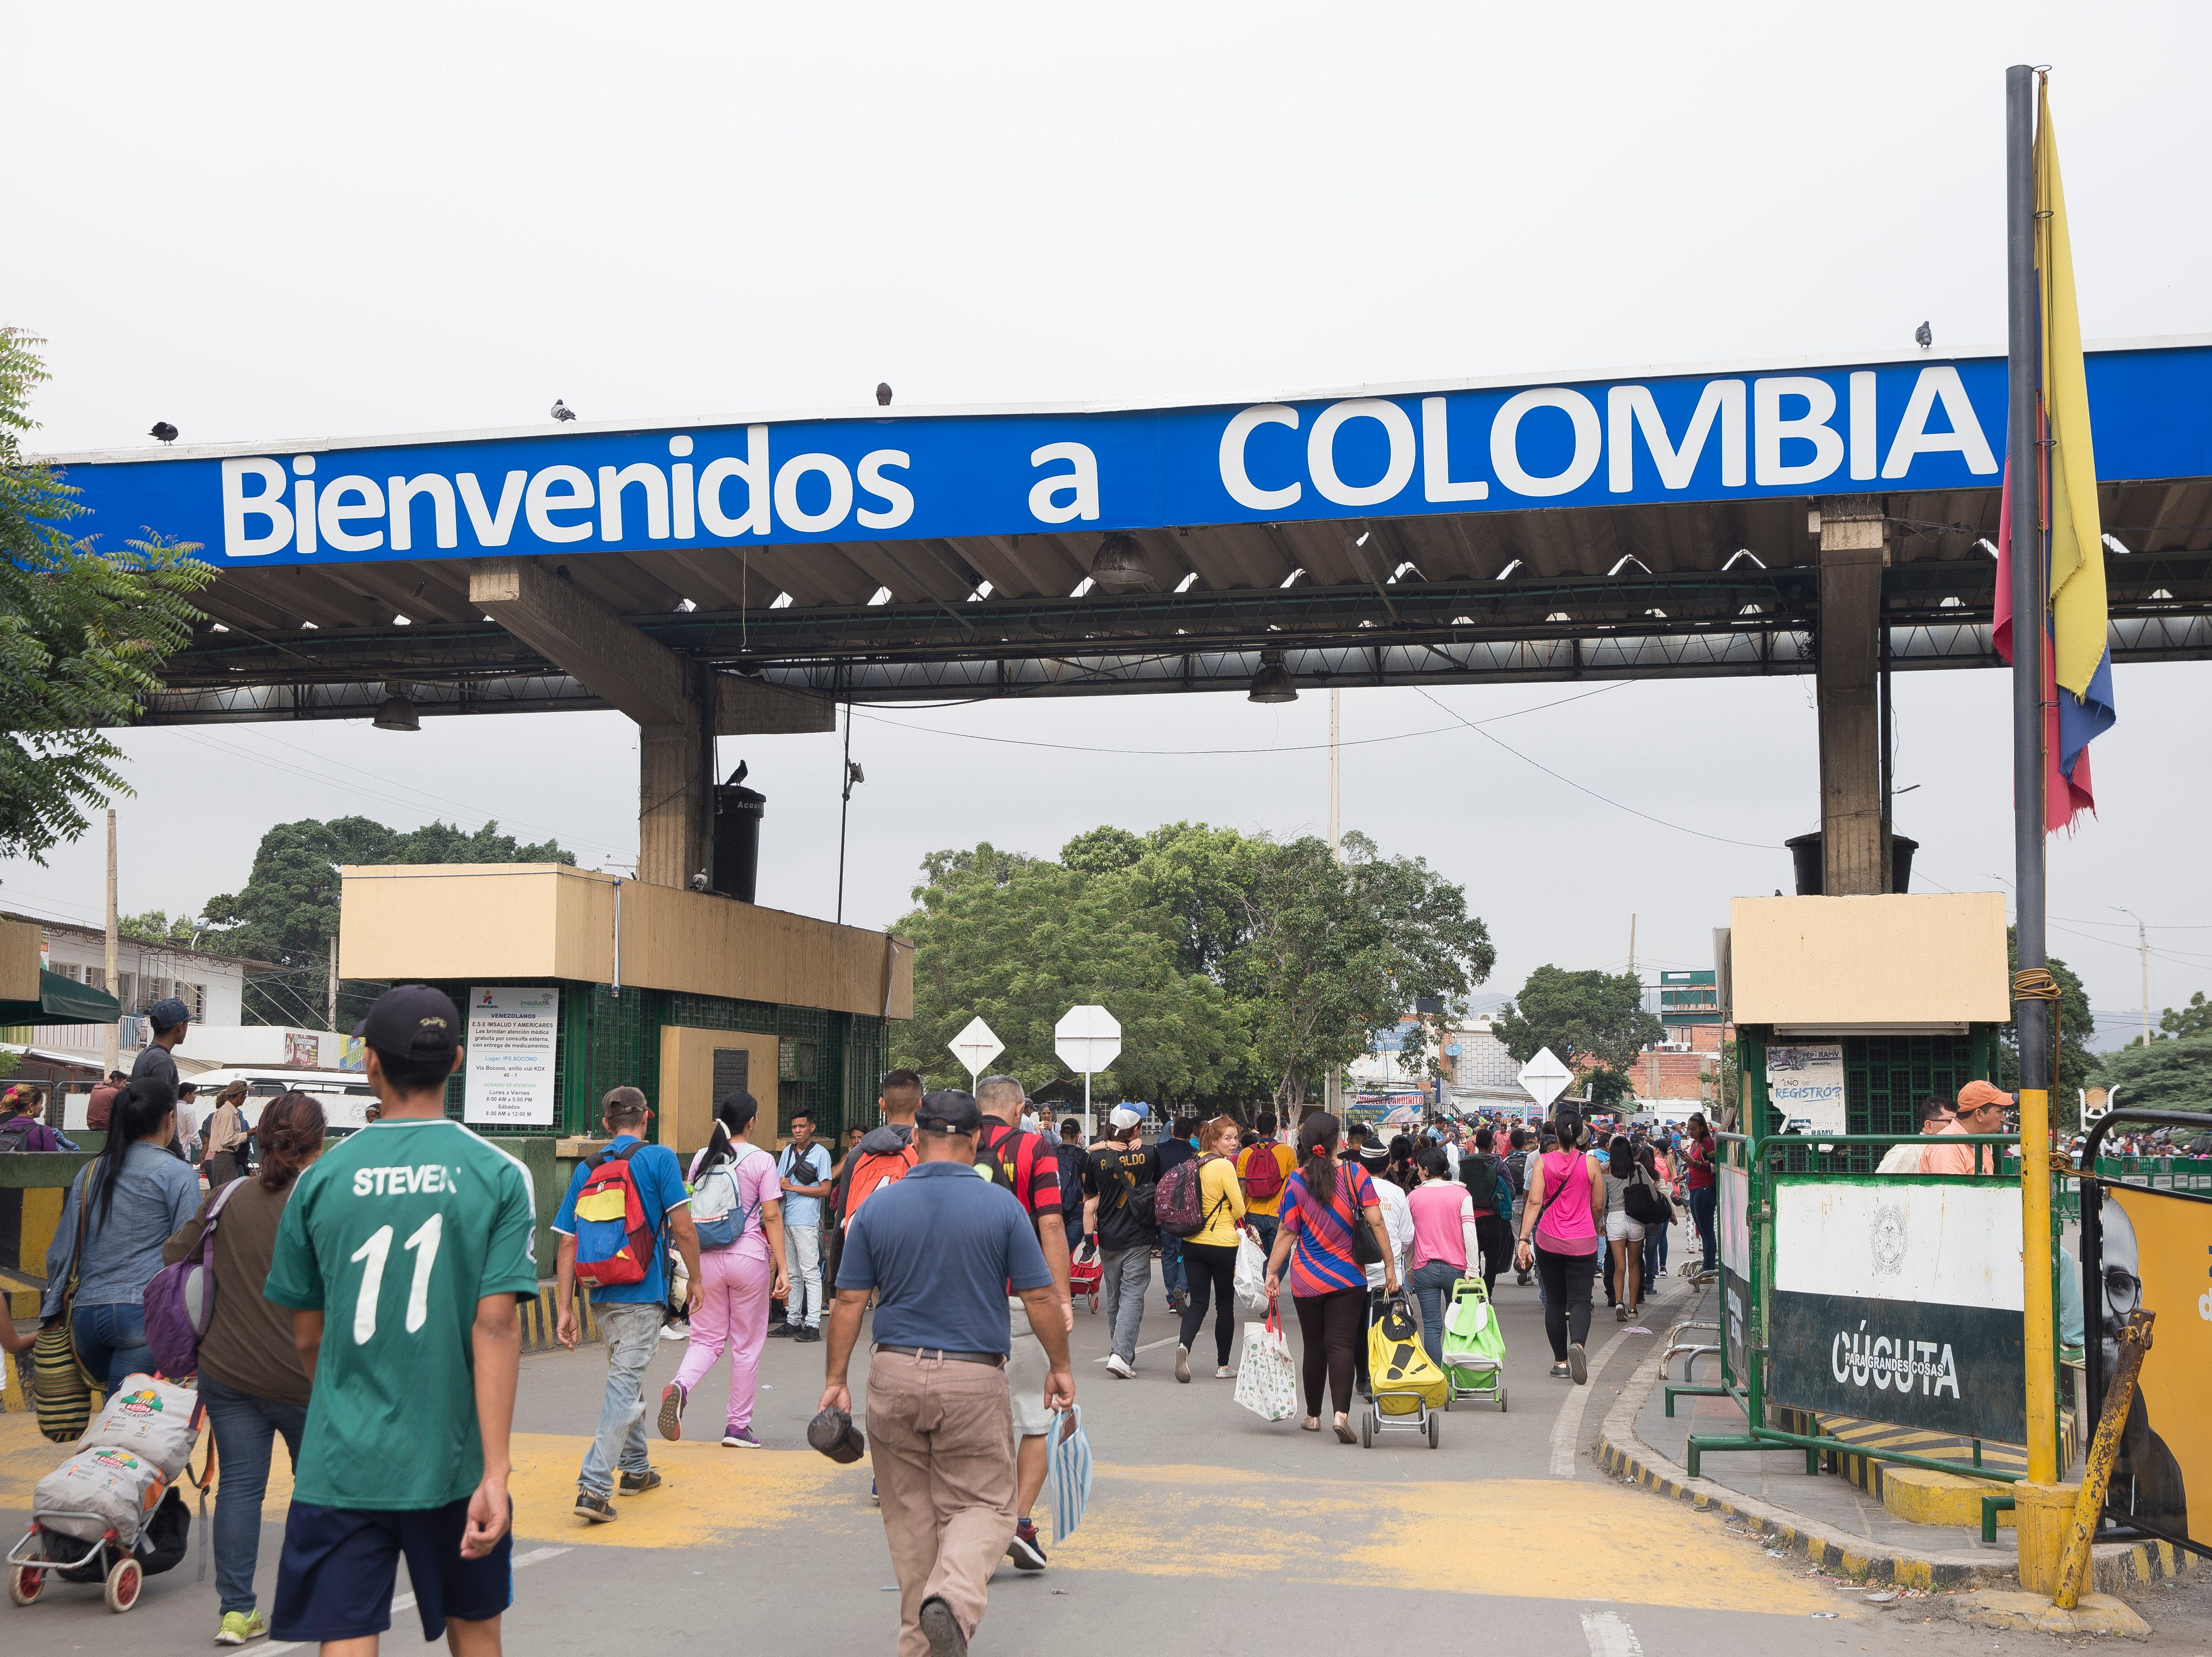 Thousands of migrants flood into Colombia from Venezuela in Cœcuta, Colombia on Feb. 6, 2019. Over 40,000 Venezuelans cross the bridge daily as their country collapses.